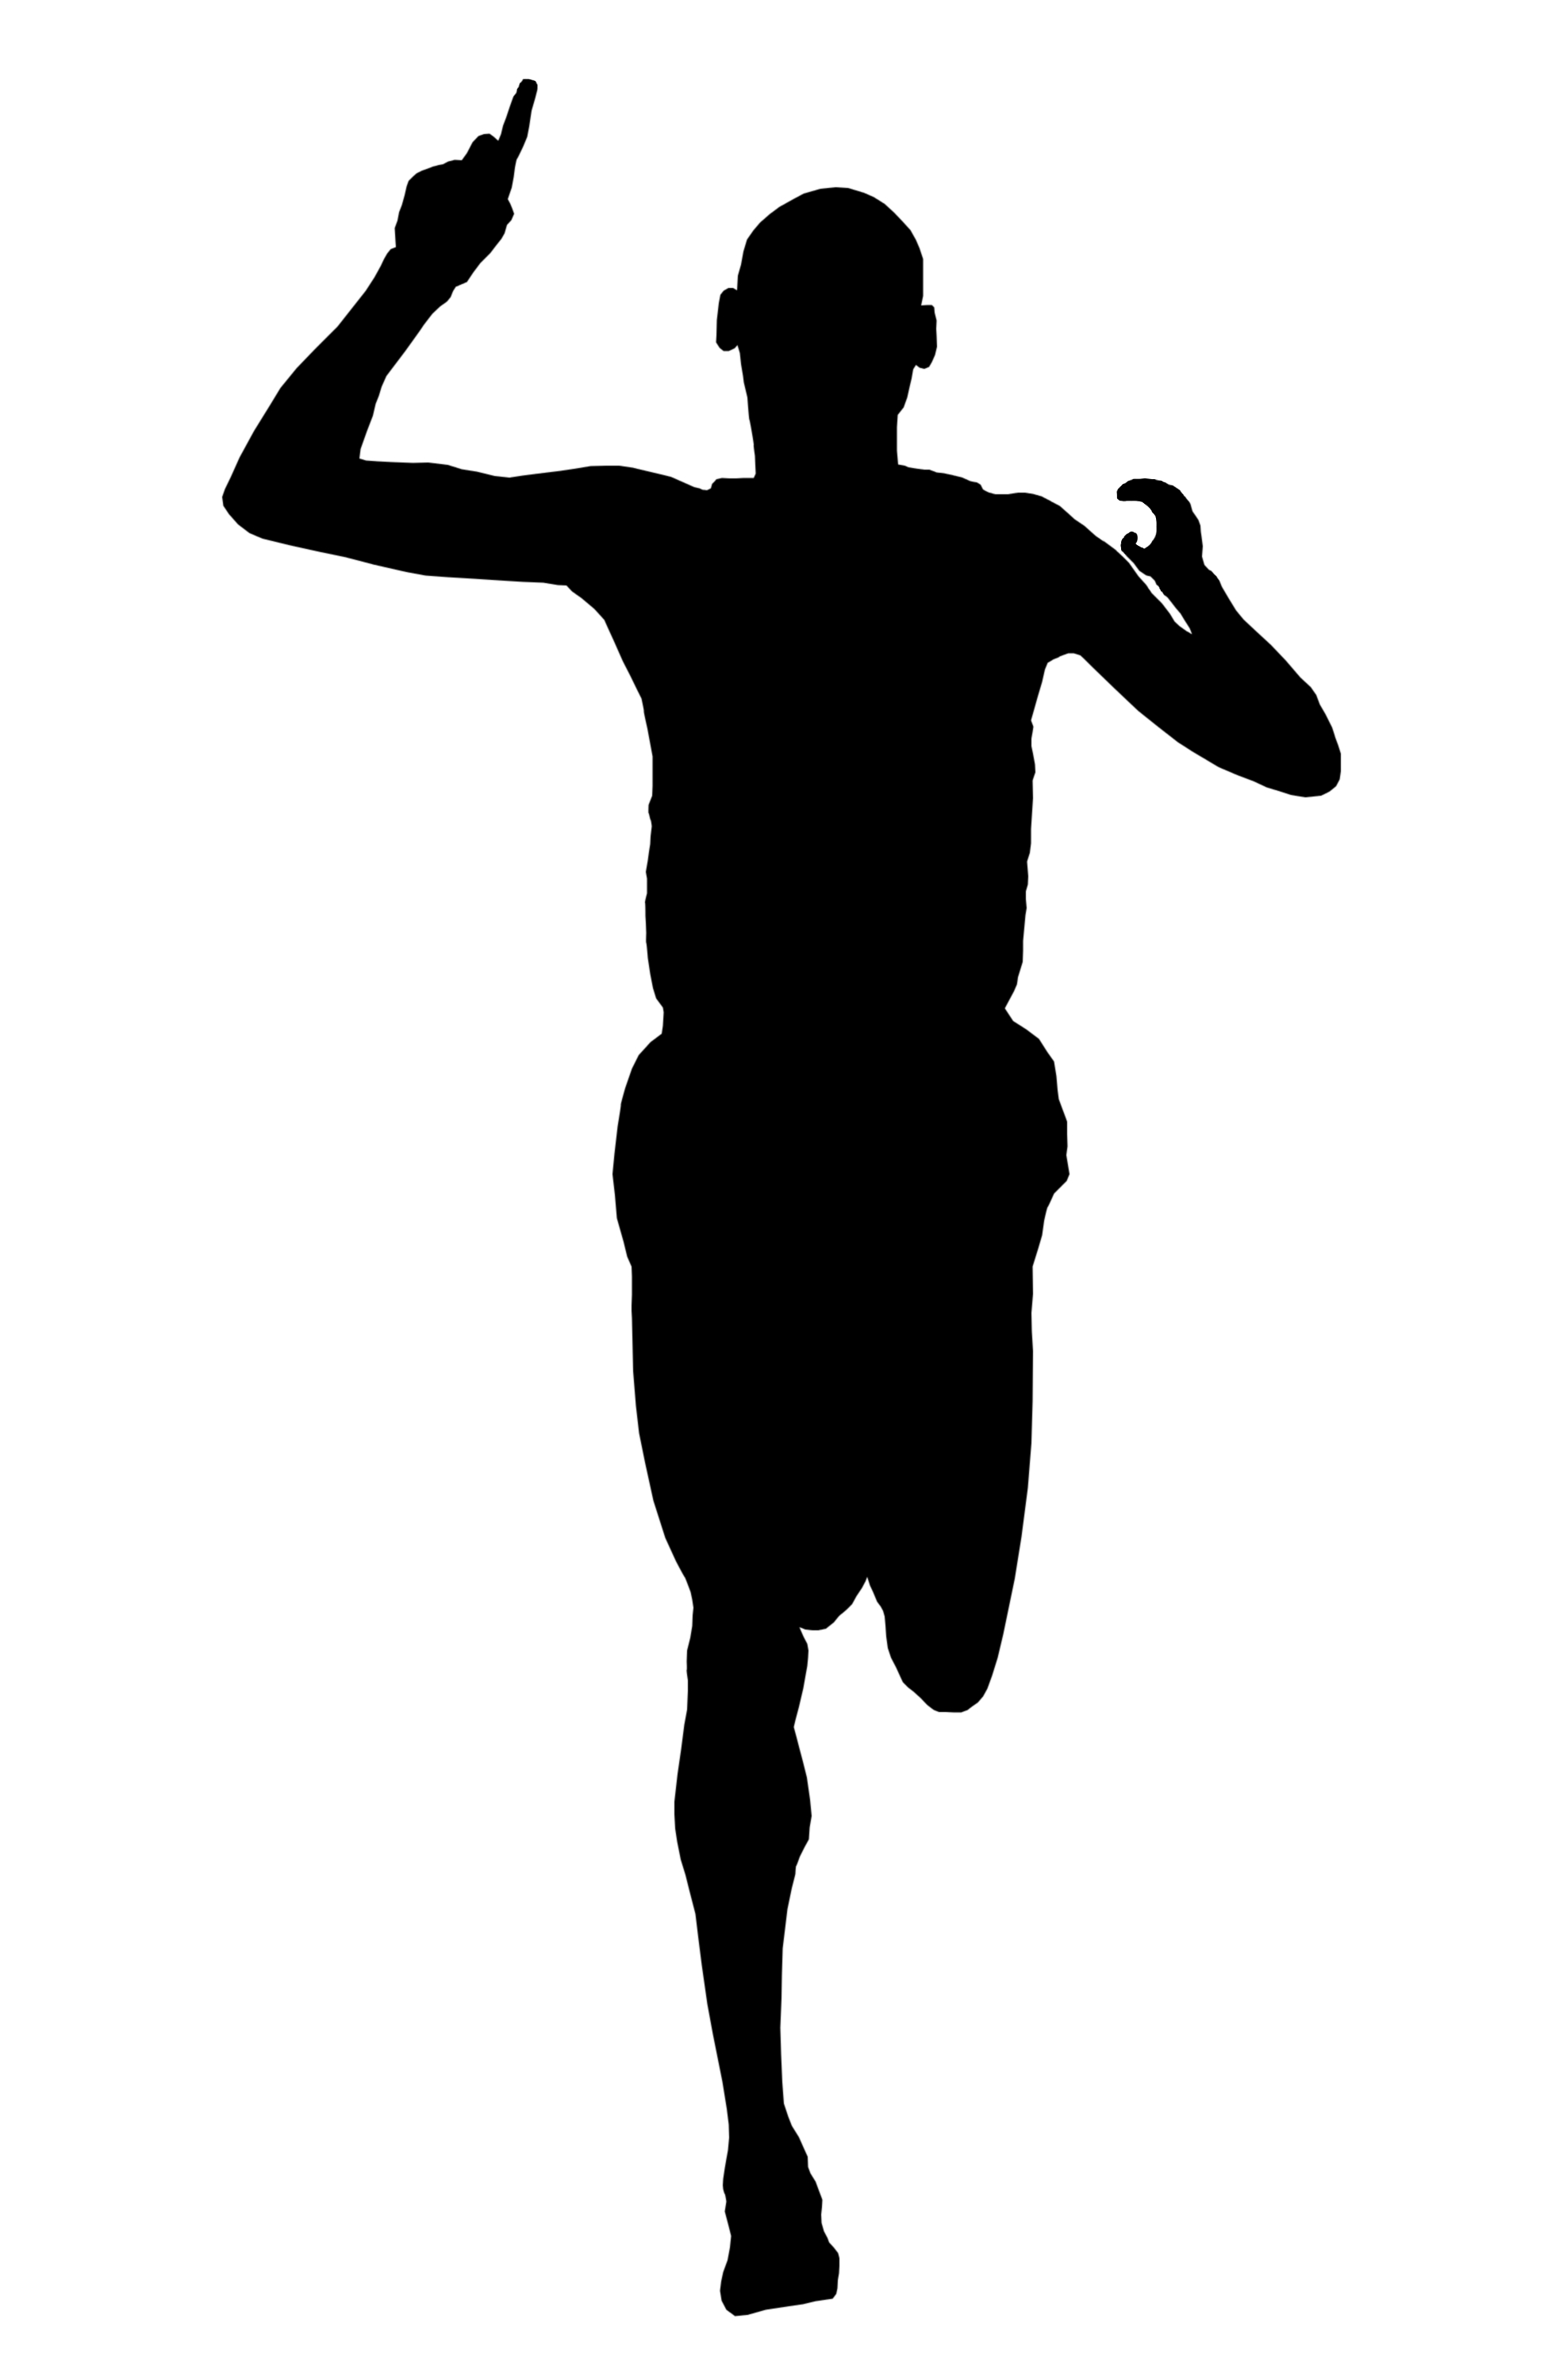 runner silhouette vector at getdrawings com free for personal use rh getdrawings com woman runner silhouette vector woman runner silhouette vector free